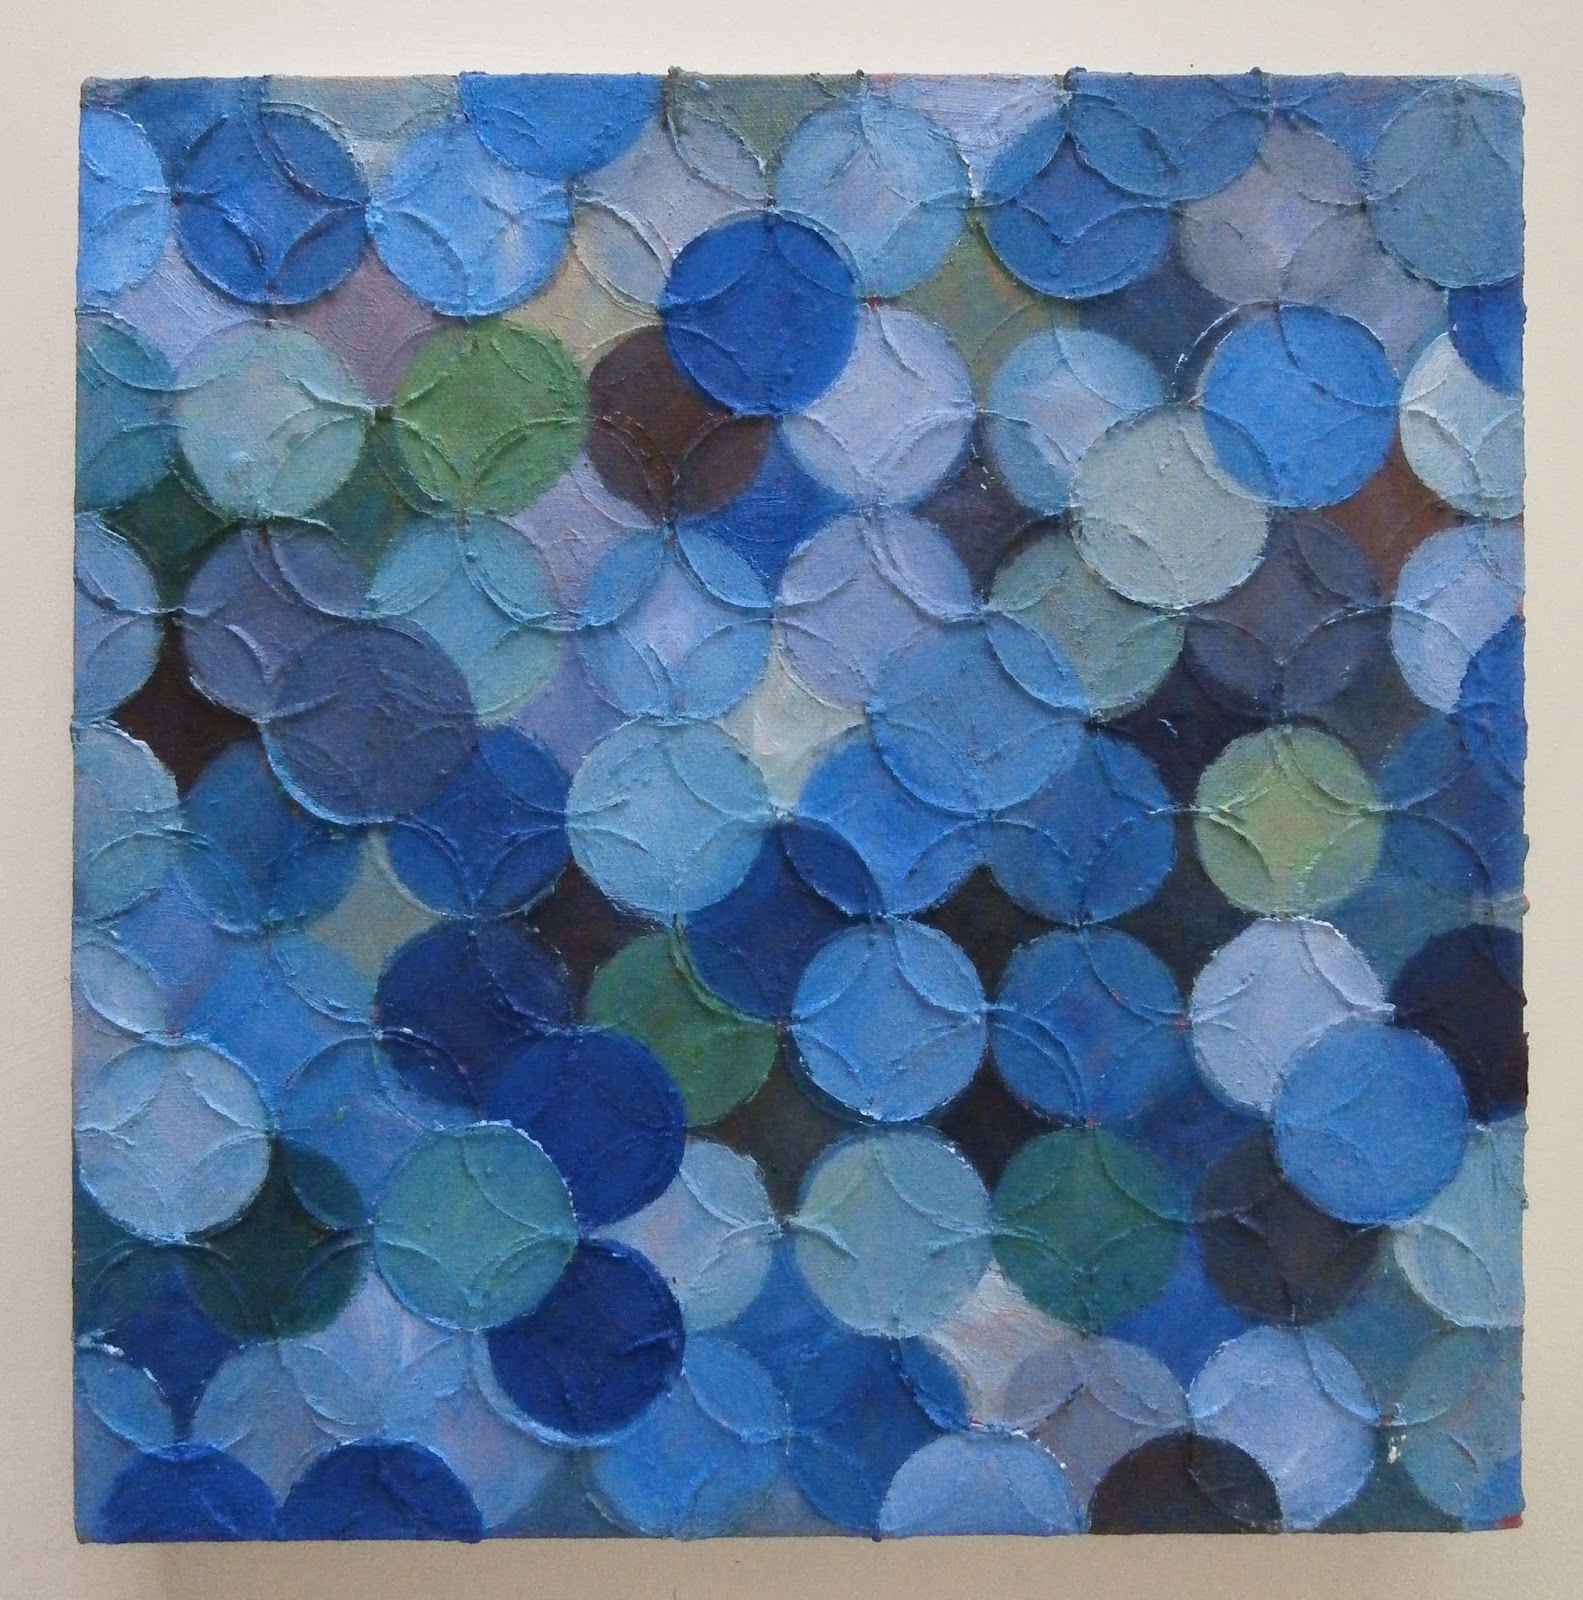 blue circle painting, kate mackay, art, geometric abstraction, non objective, fire station gallery, dubbo